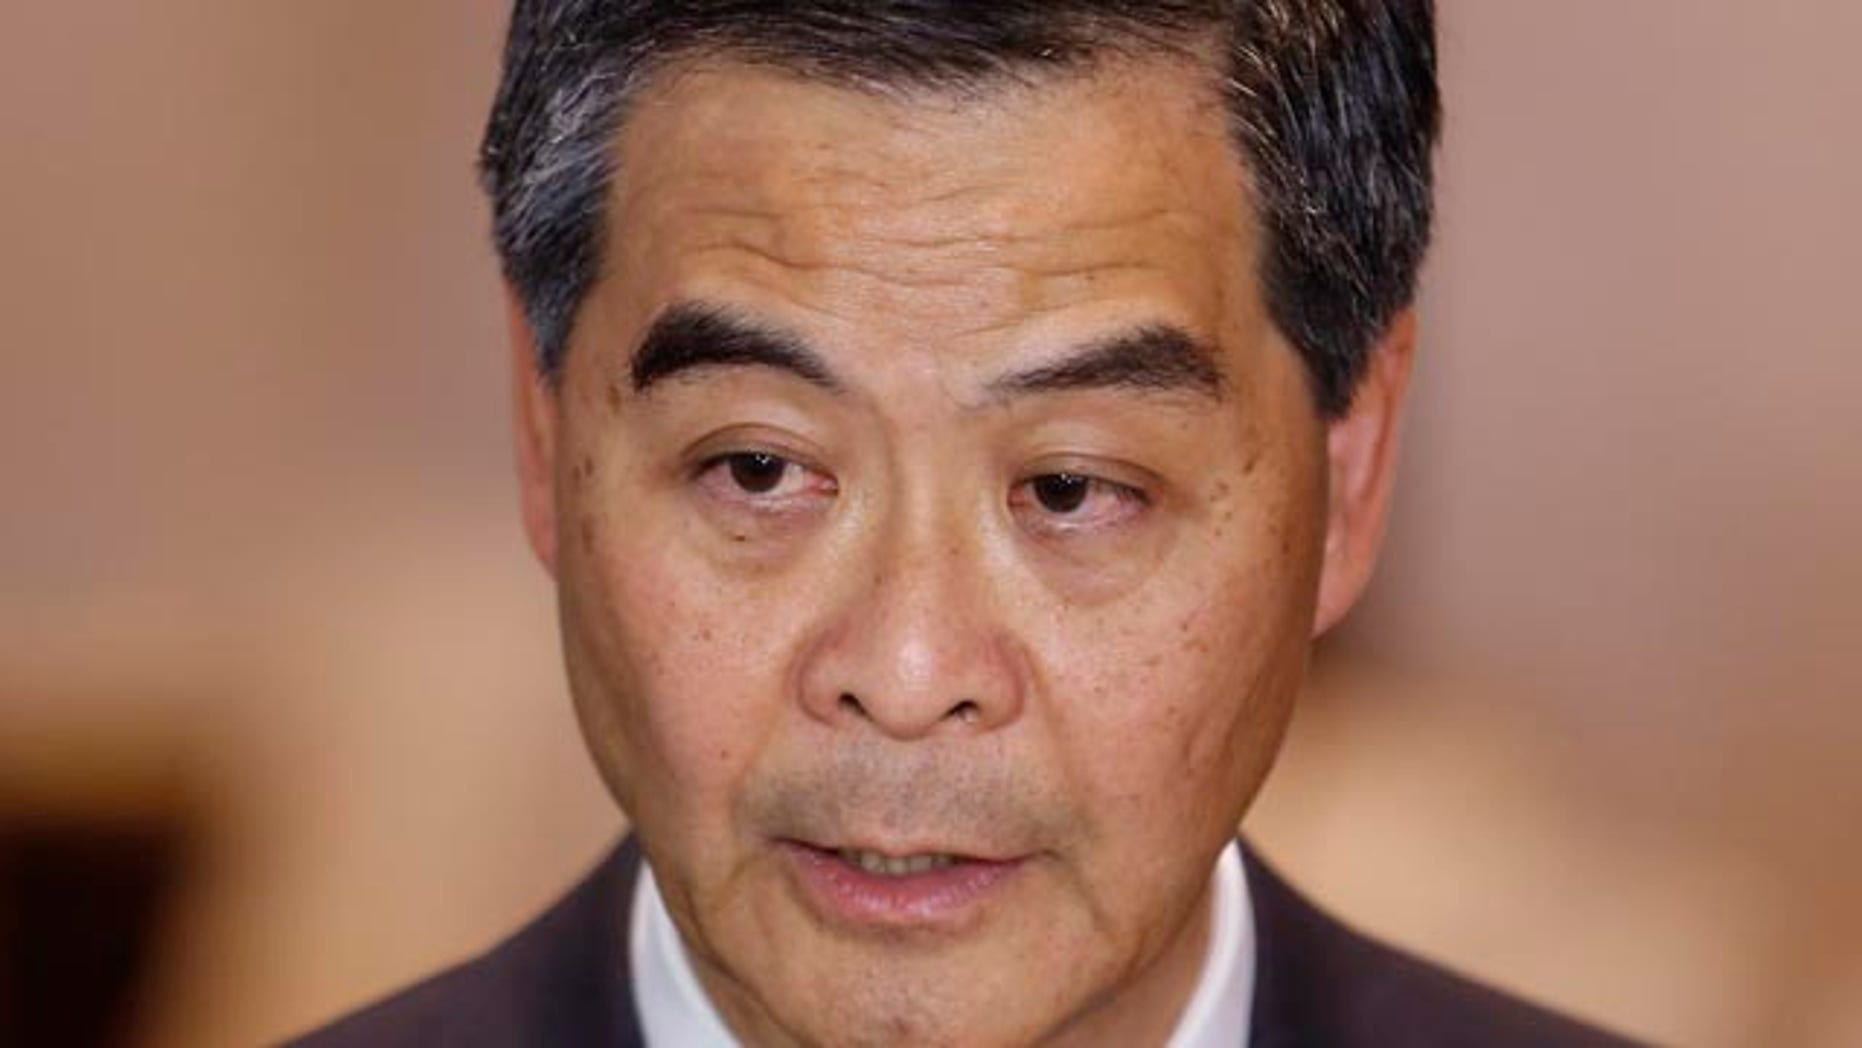 October 15, 2014: Hong Kong Chief Executive Leung Chun-ying speaks to the media after a presentation ceremony in Hong Kong. (AP Photo/Kin Cheung)